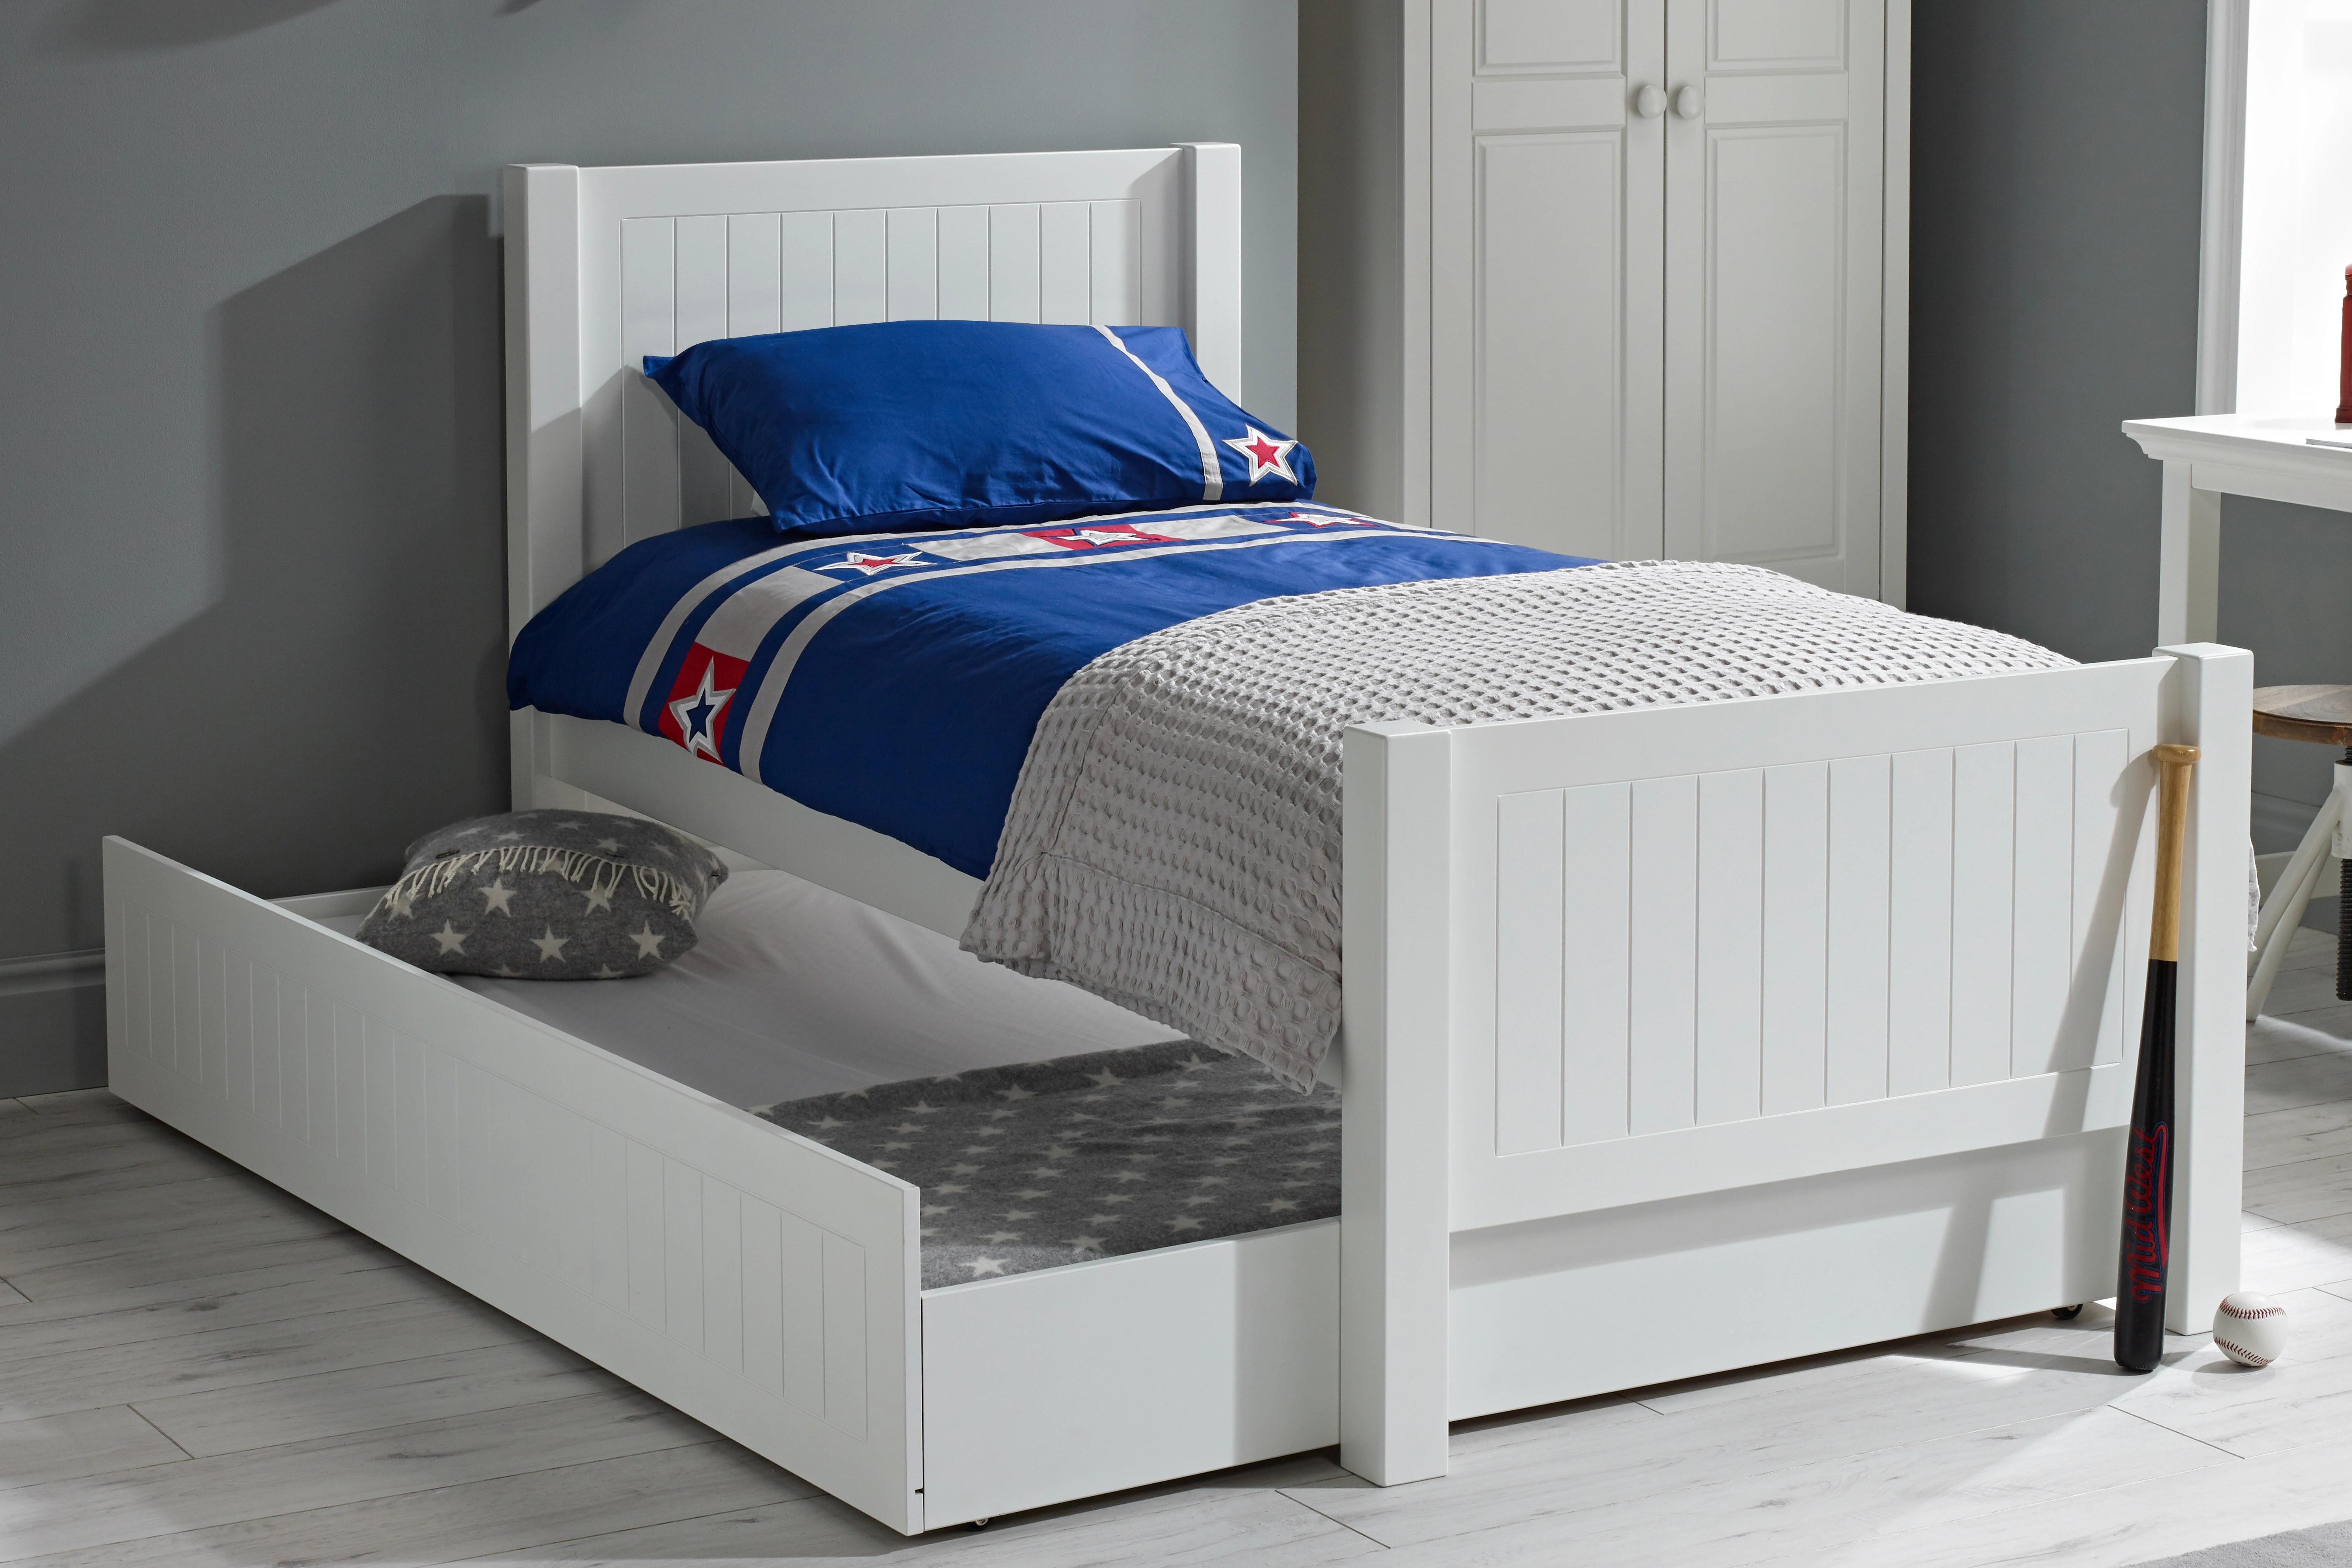 Stompa Classic Bunk Bed Ollie Leila Classic Single Bed